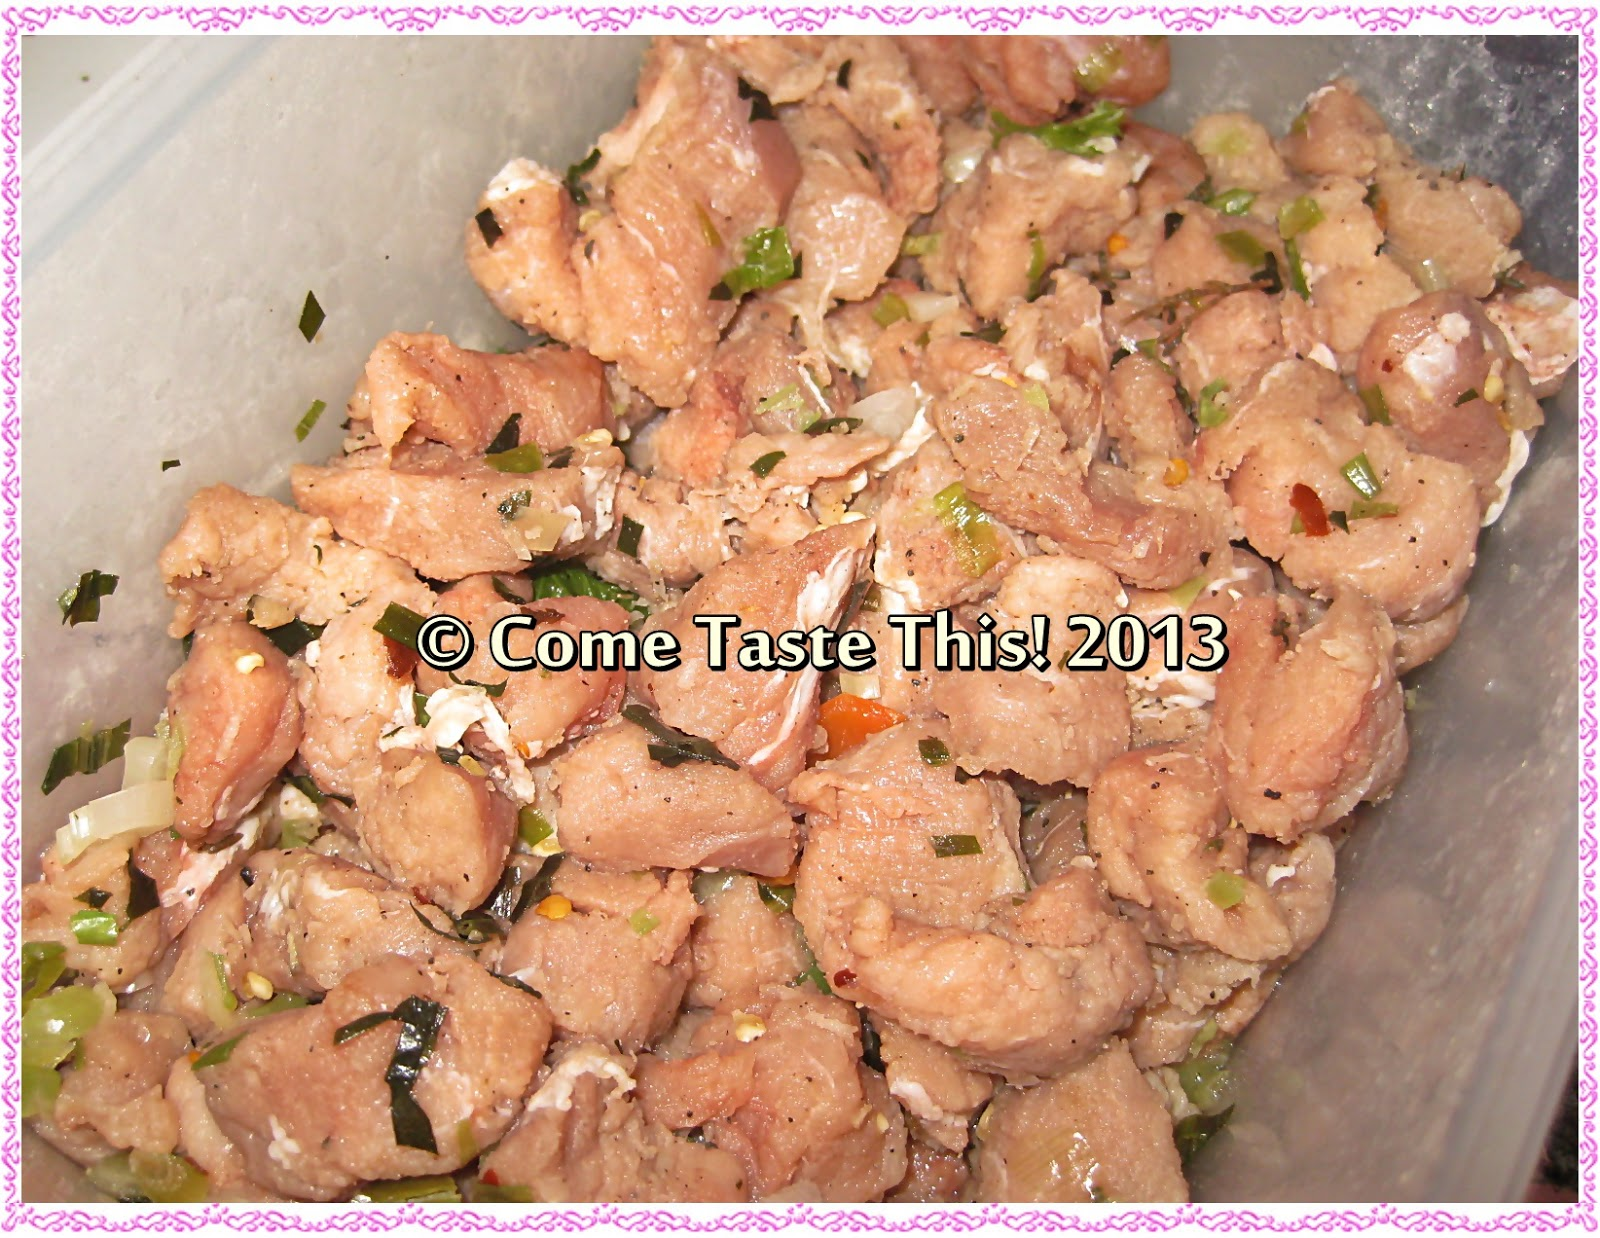 Come taste this back on the blog with spicy geera pork first things first i always season my pork i used a nice pork loin that i cut into 1 inch pieces and seasoned with lime juice salt chopped chives forumfinder Images